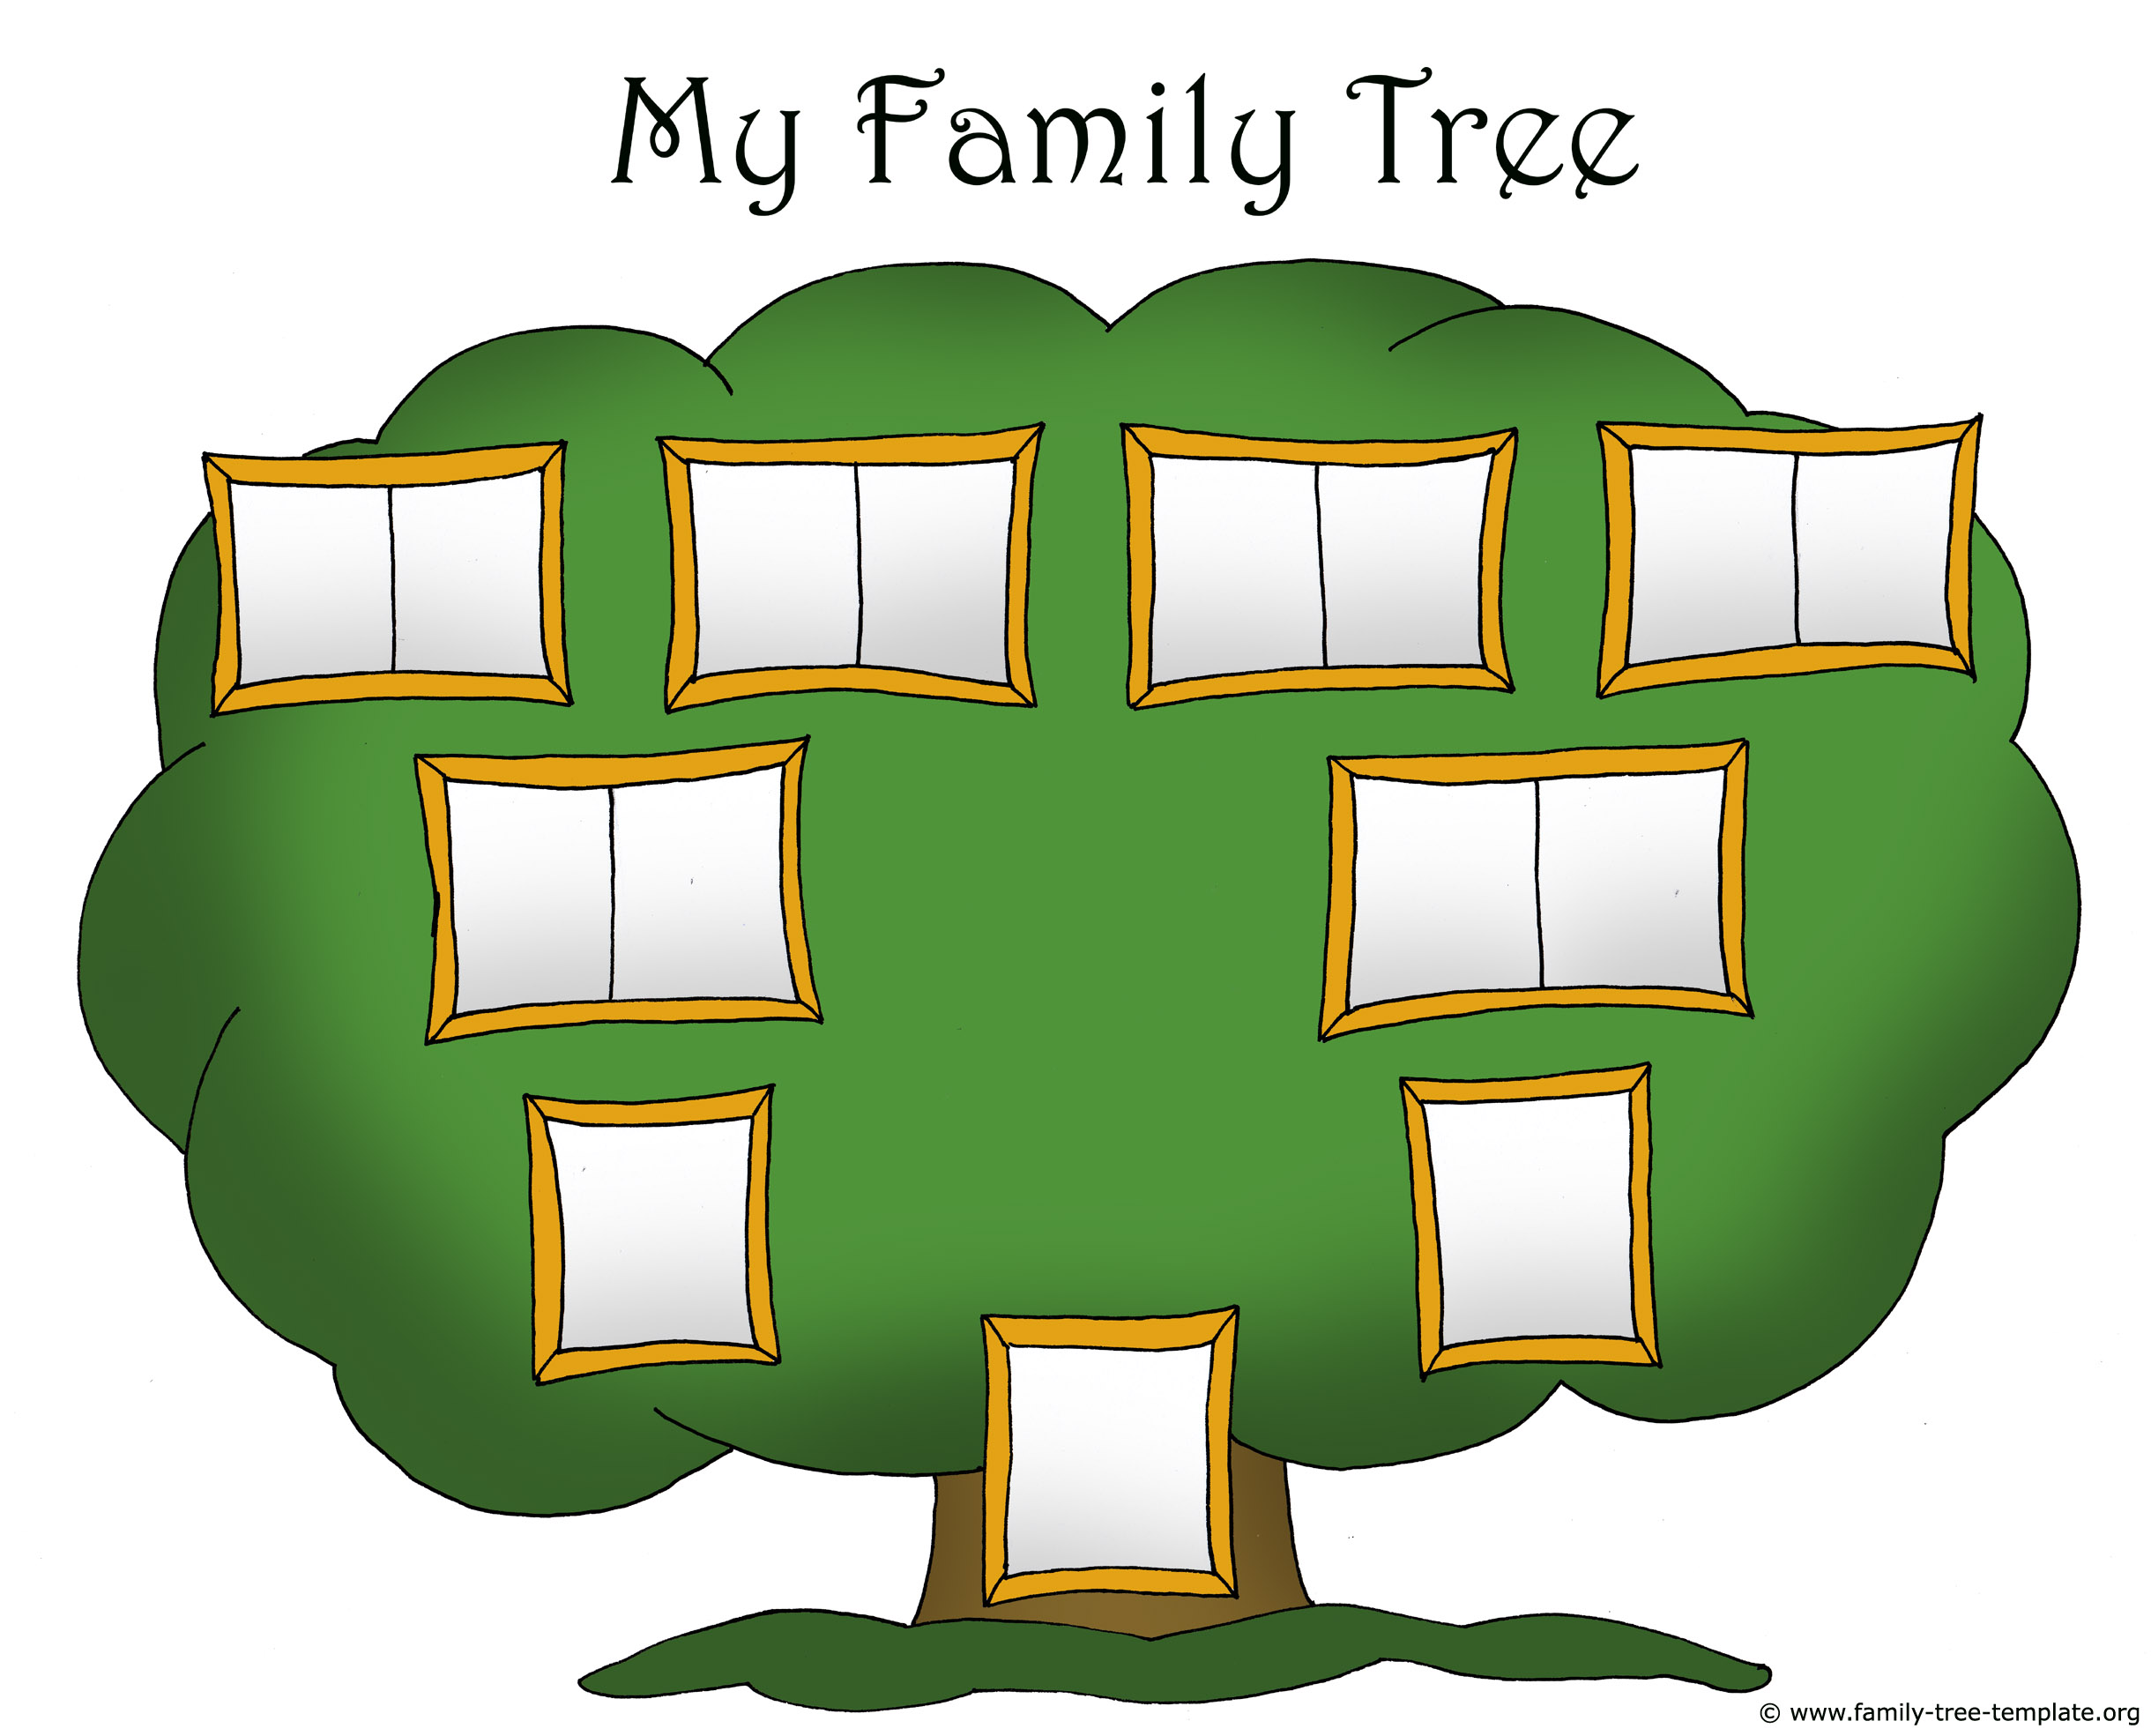 how to draw a family tree diagram er for office management system template kids printable genealogy charts